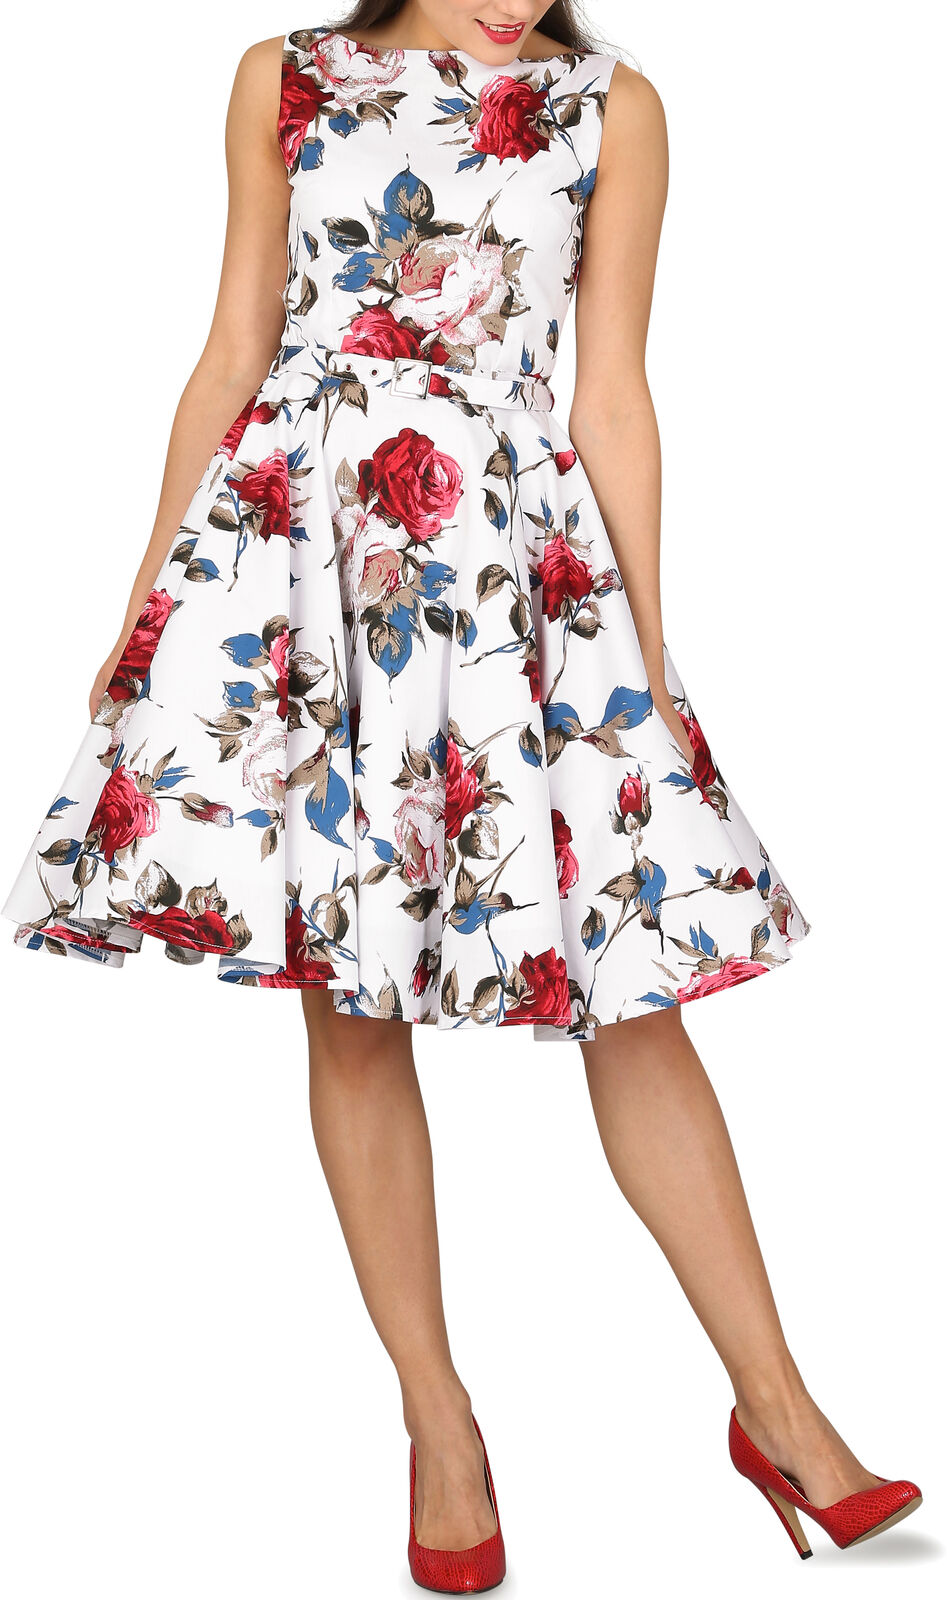 BEAUTIFUL Floral    AUDREY  VINTAGE Balia Vintage 50's Rockabilly Swing Prom Dress 905ddd